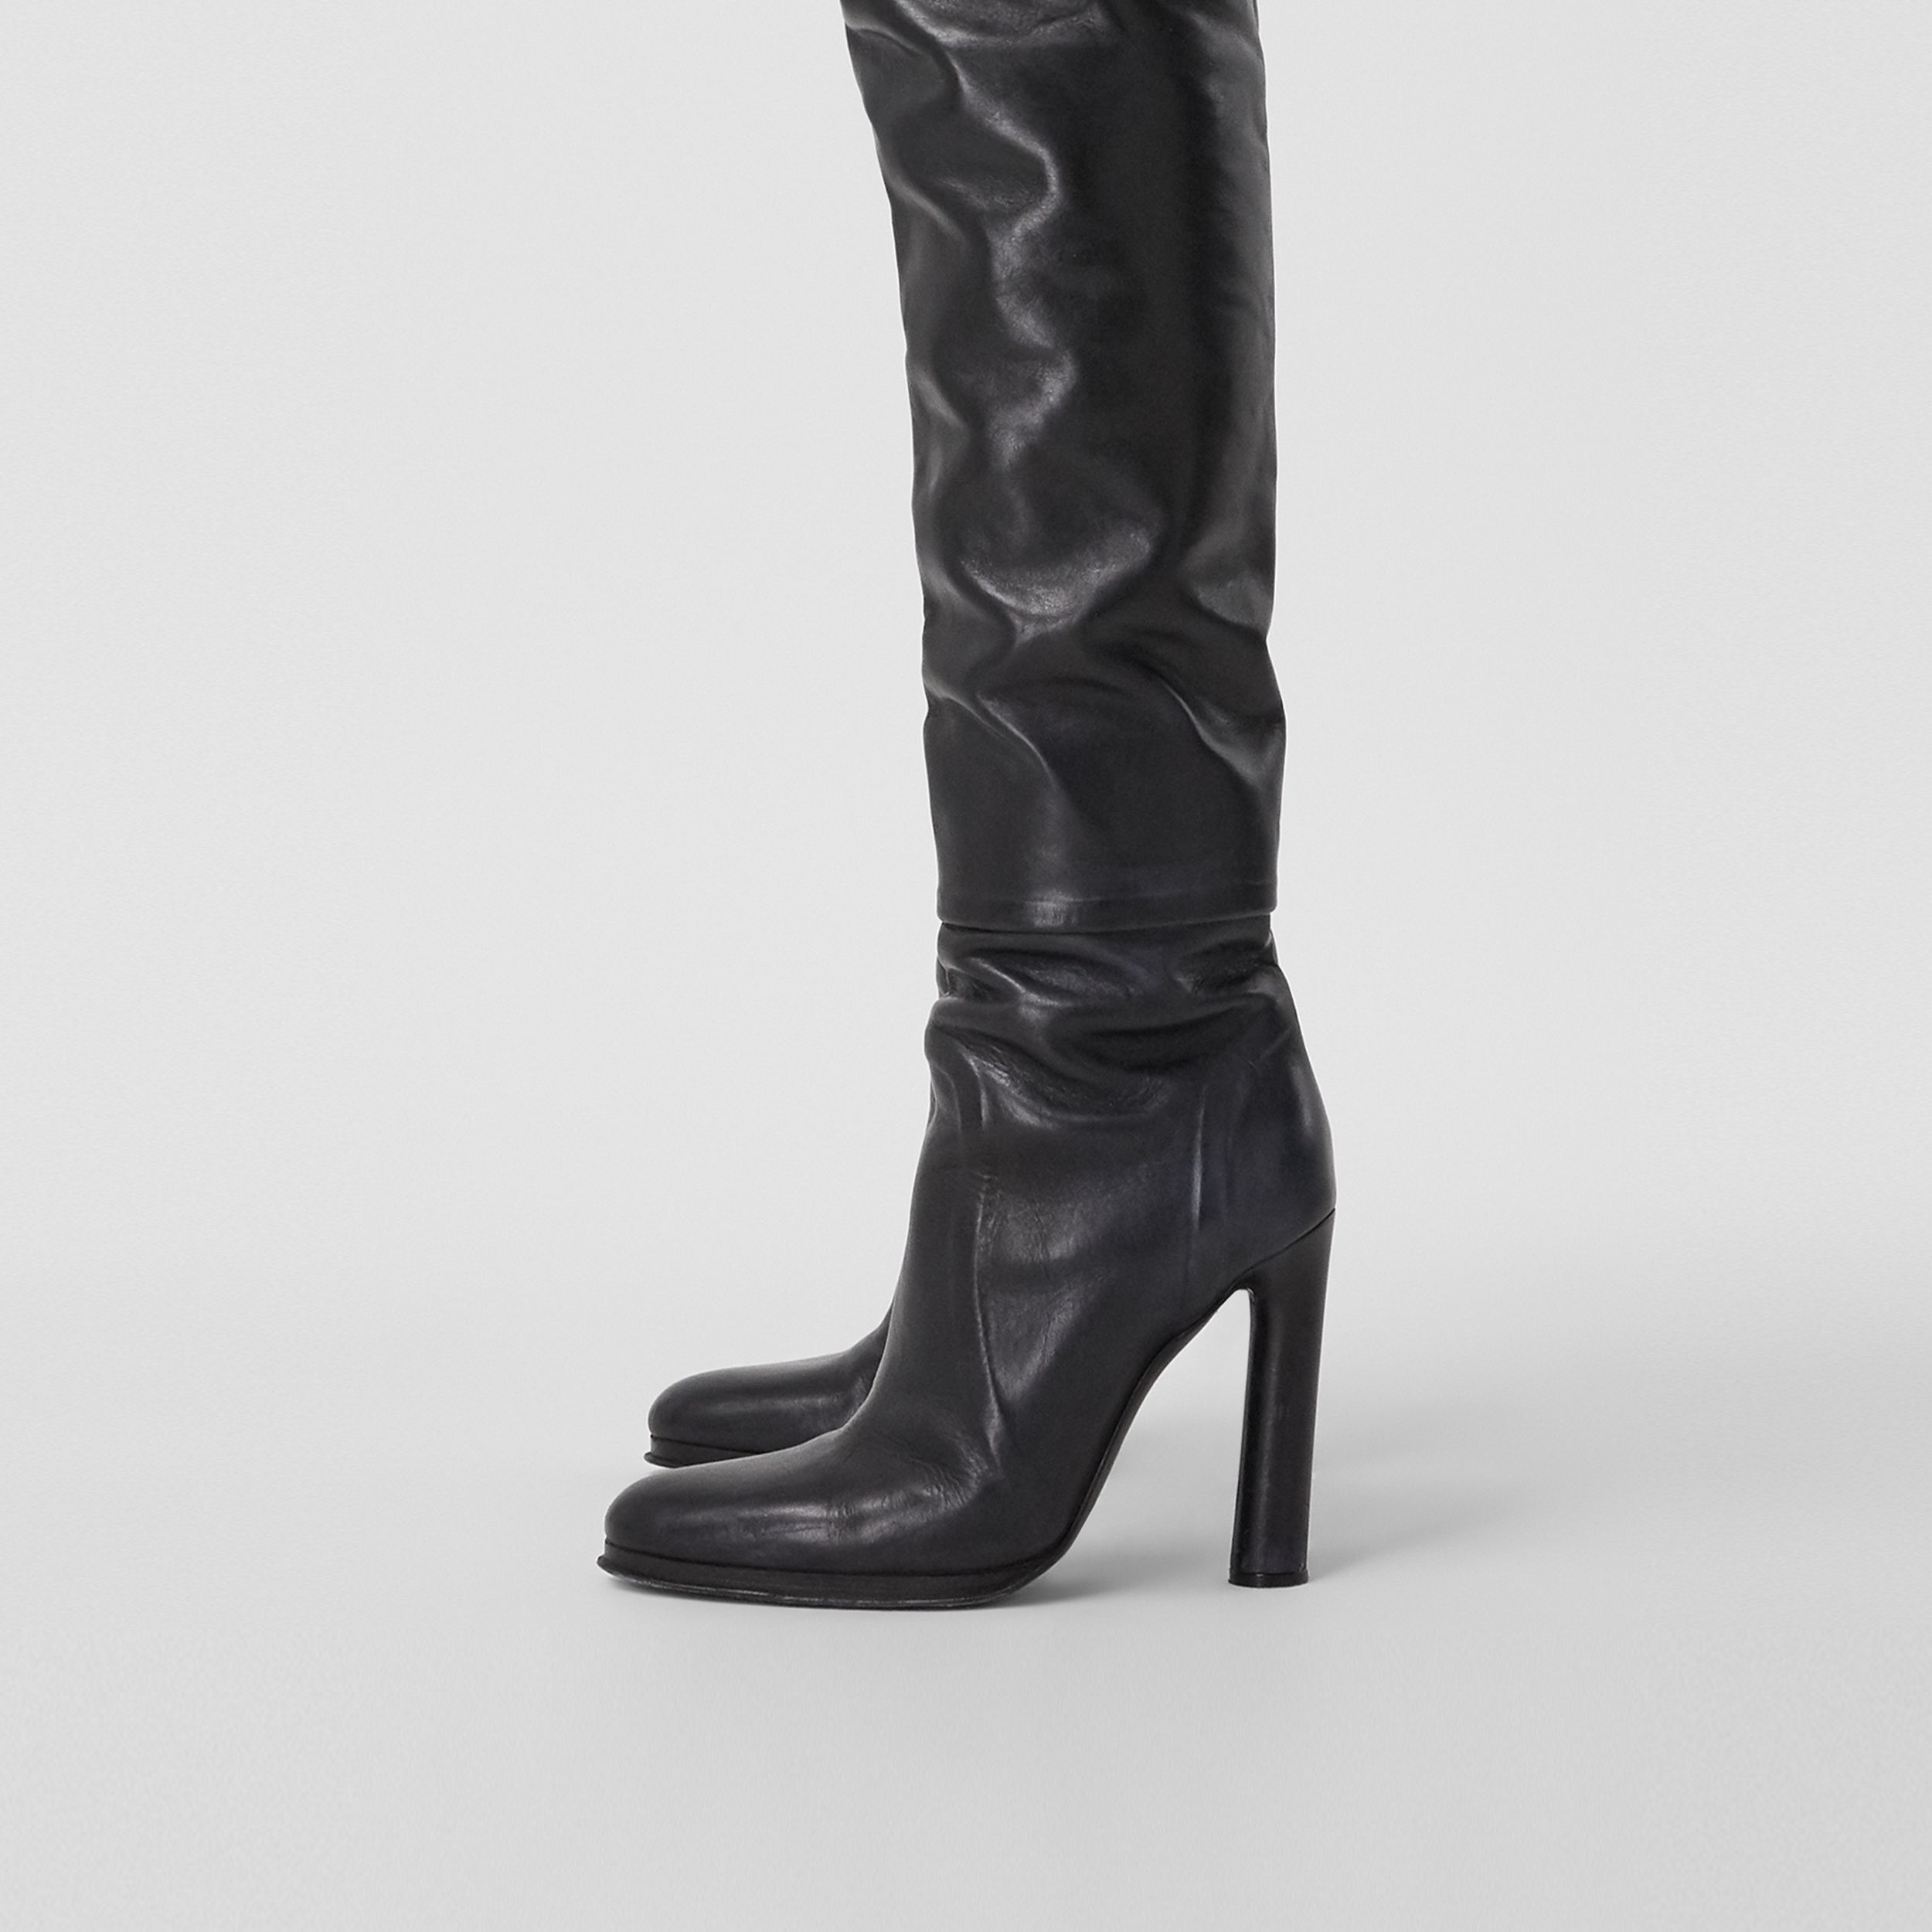 Porthole Detail Leather Wader Boots in Black - Women | Burberry United States - 2